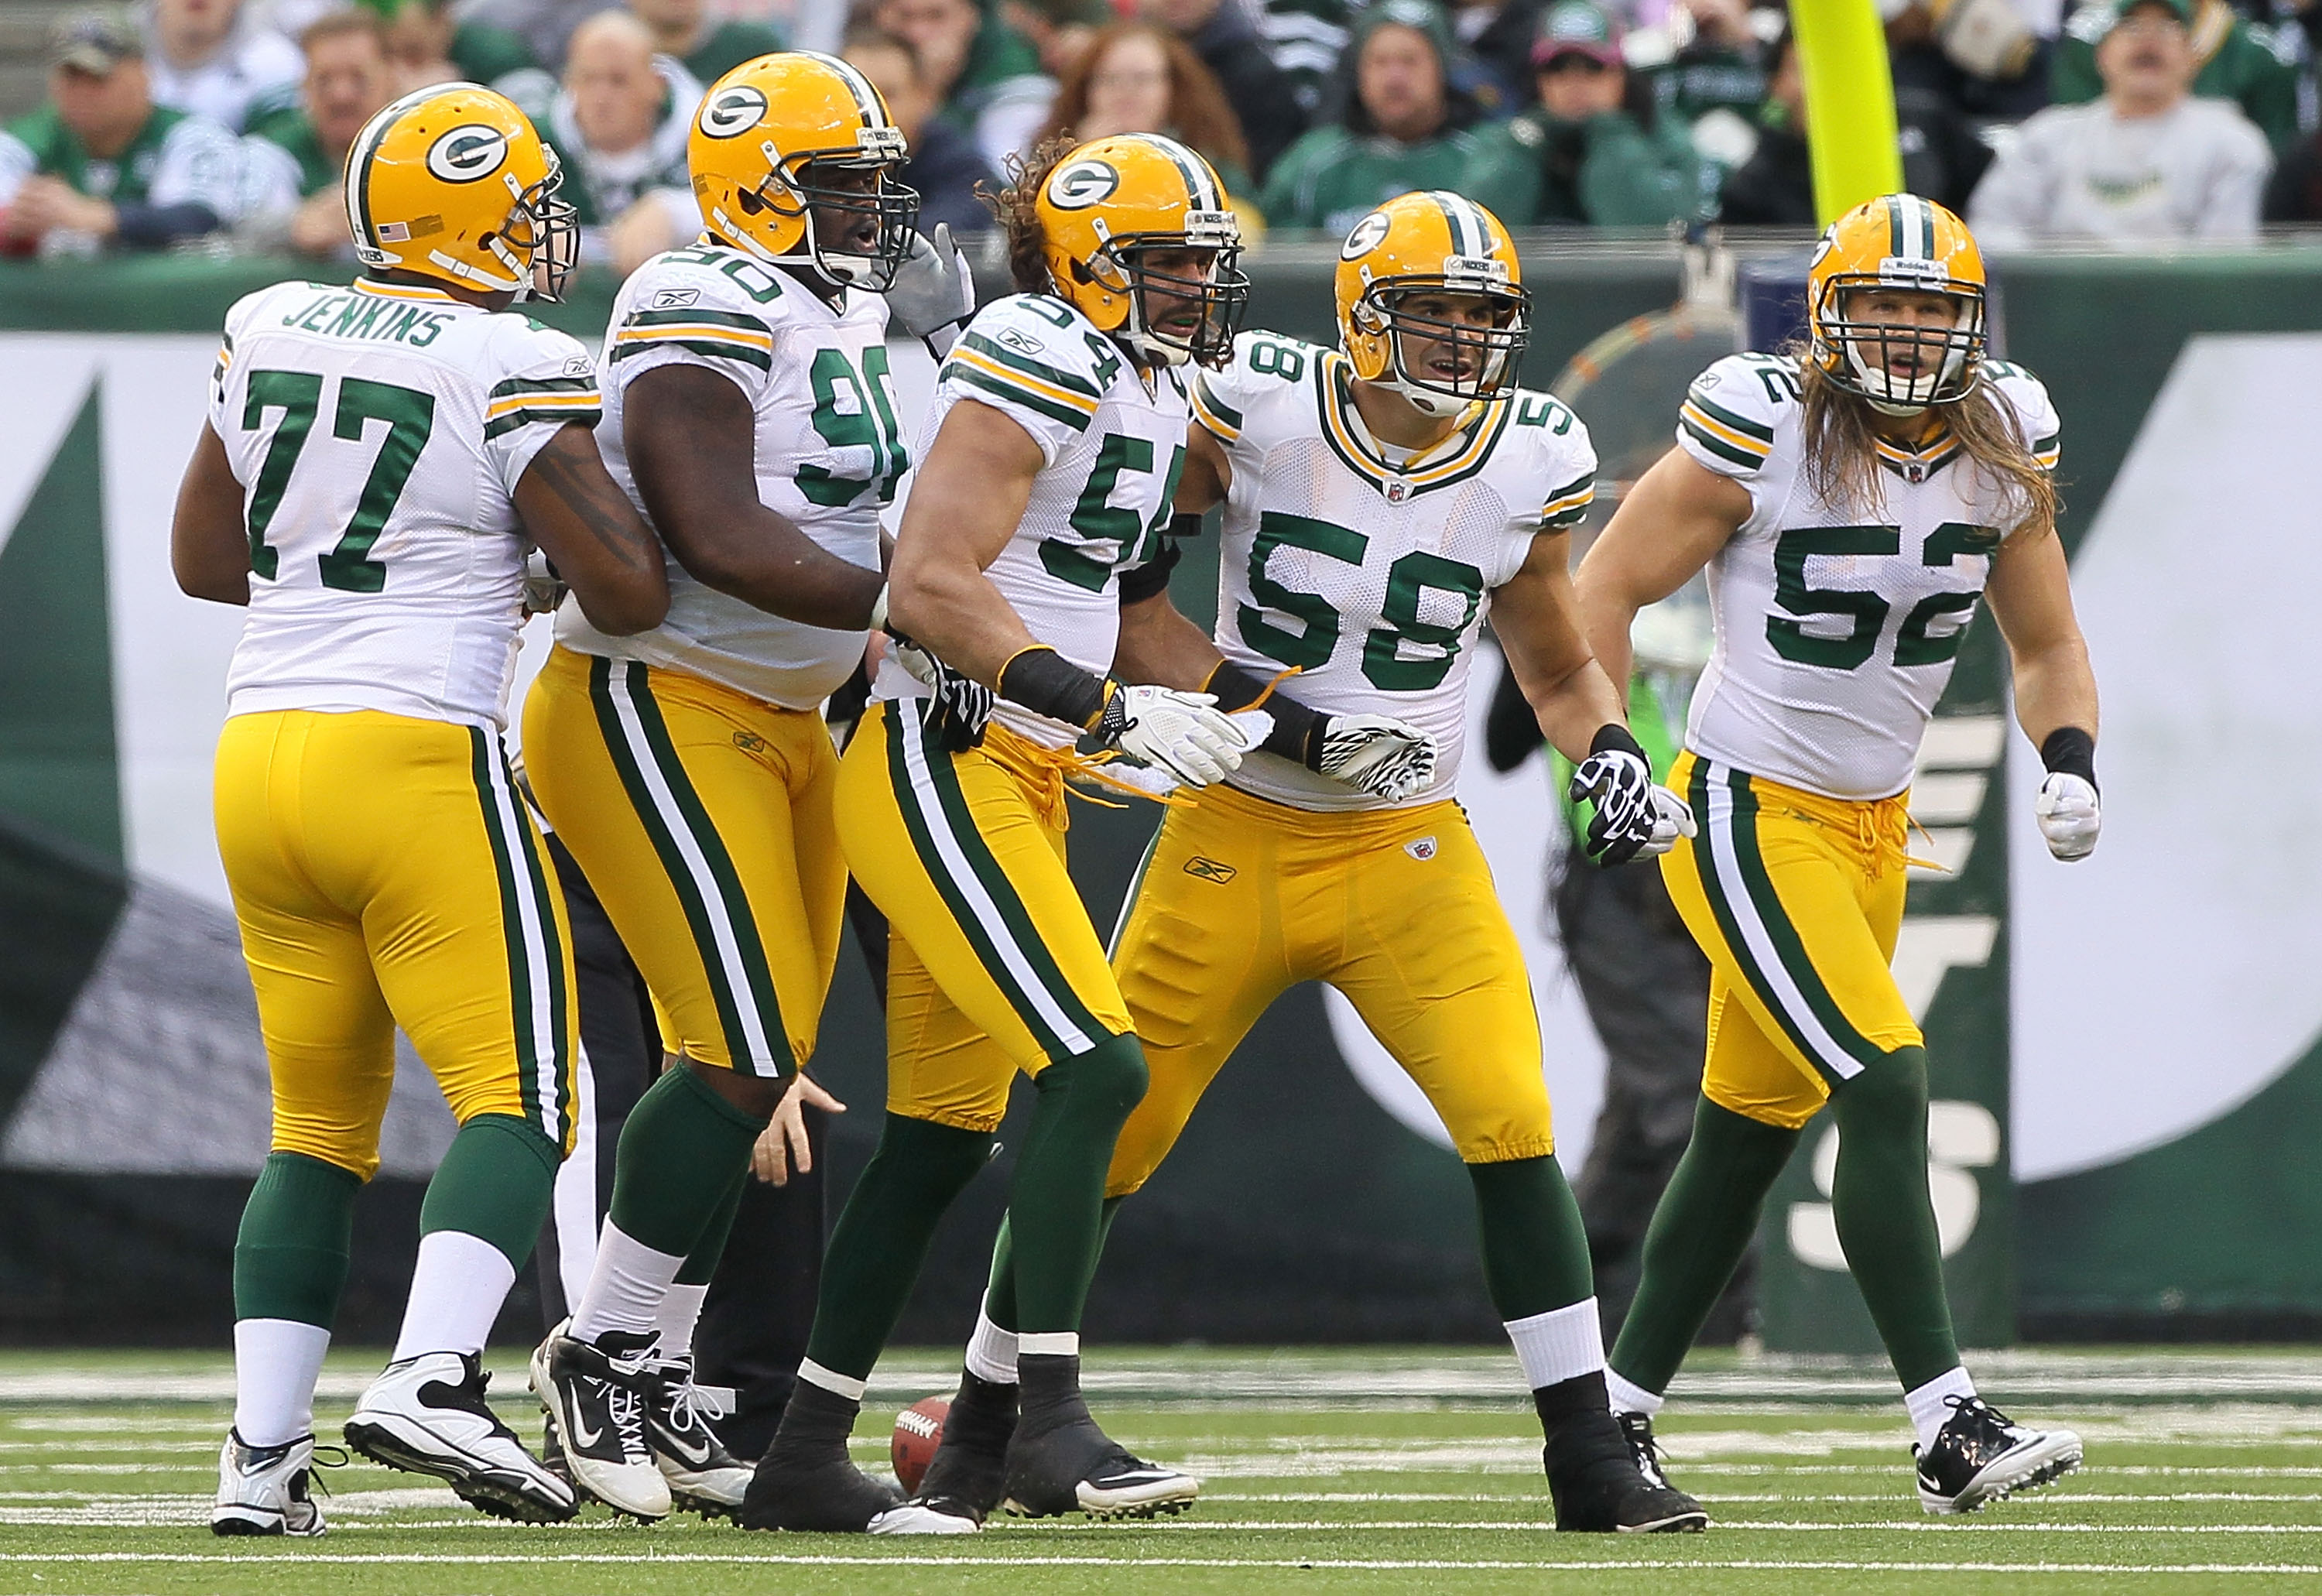 EAST RUTHERFORD, NJ - OCTOBER 31:  The defense of the Green Bay Packers celebrate a play against the New York Jets on October 31, 2010 at the New Meadowlands Stadium in East Rutherford, New Jersey.  (Photo by Jim McIsaac/Getty Images)